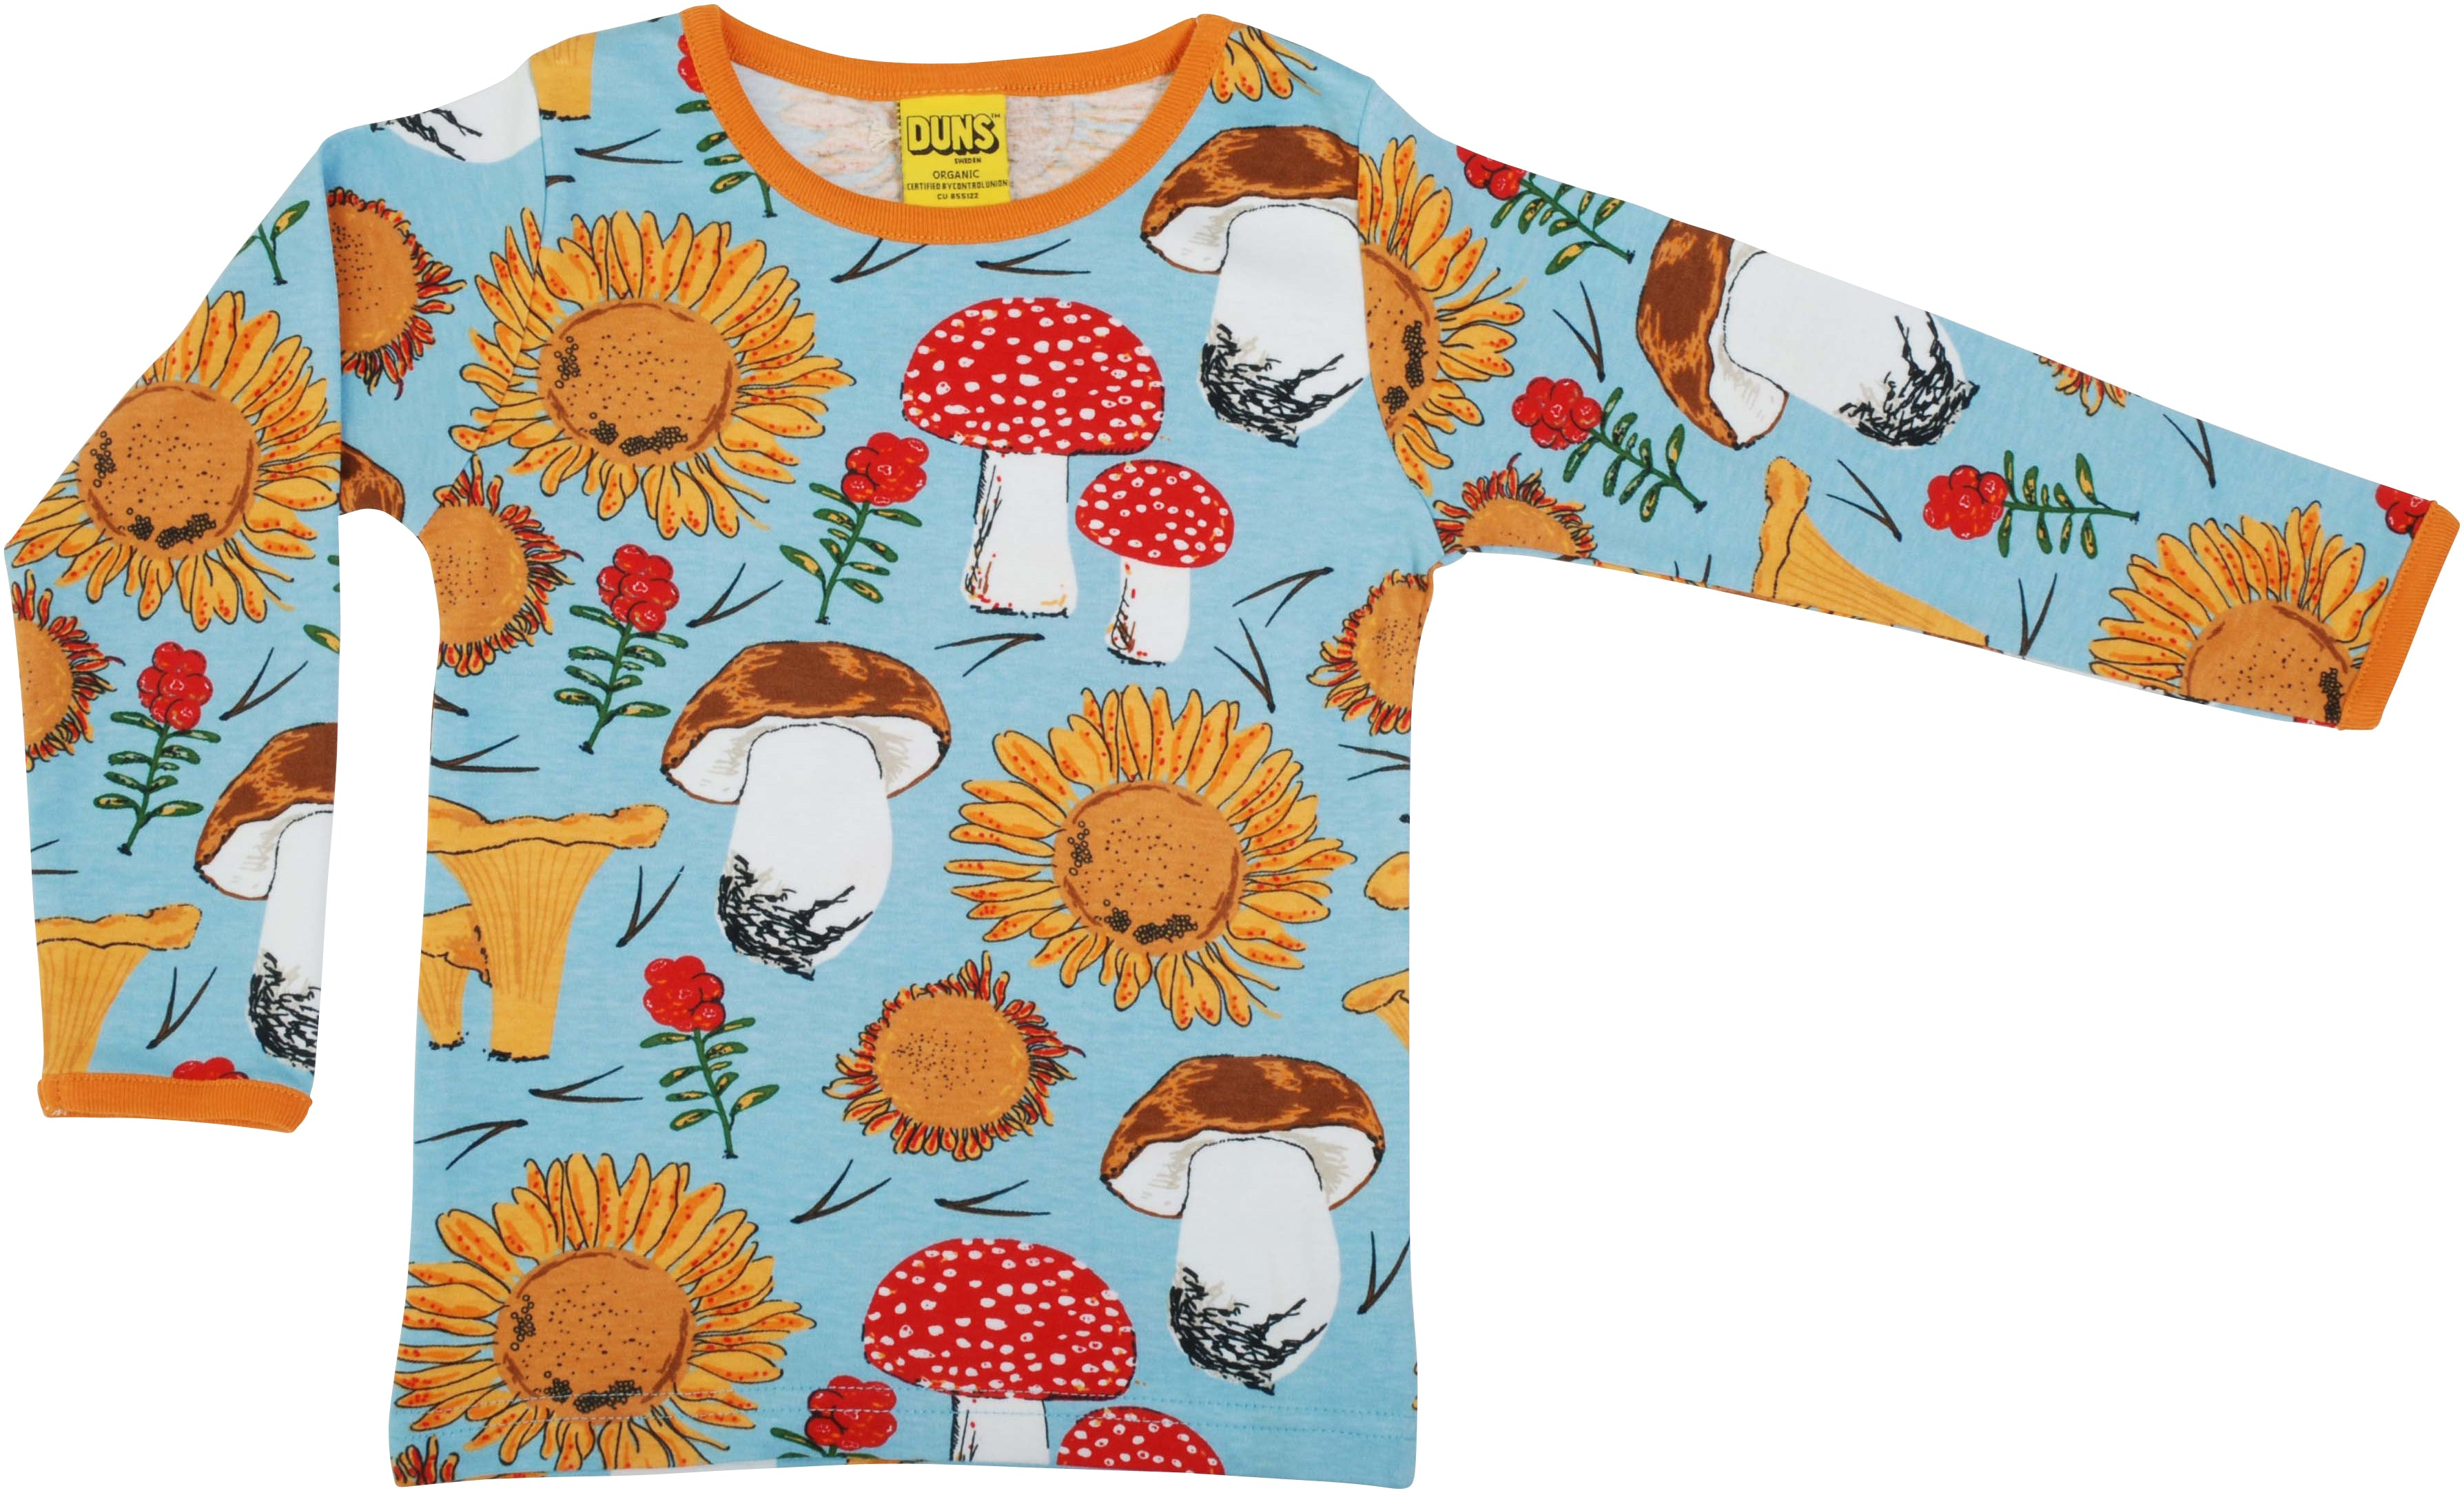 Sunflower Mushroom Blue Organic Long Sleeved Top ~ Duns Sweden